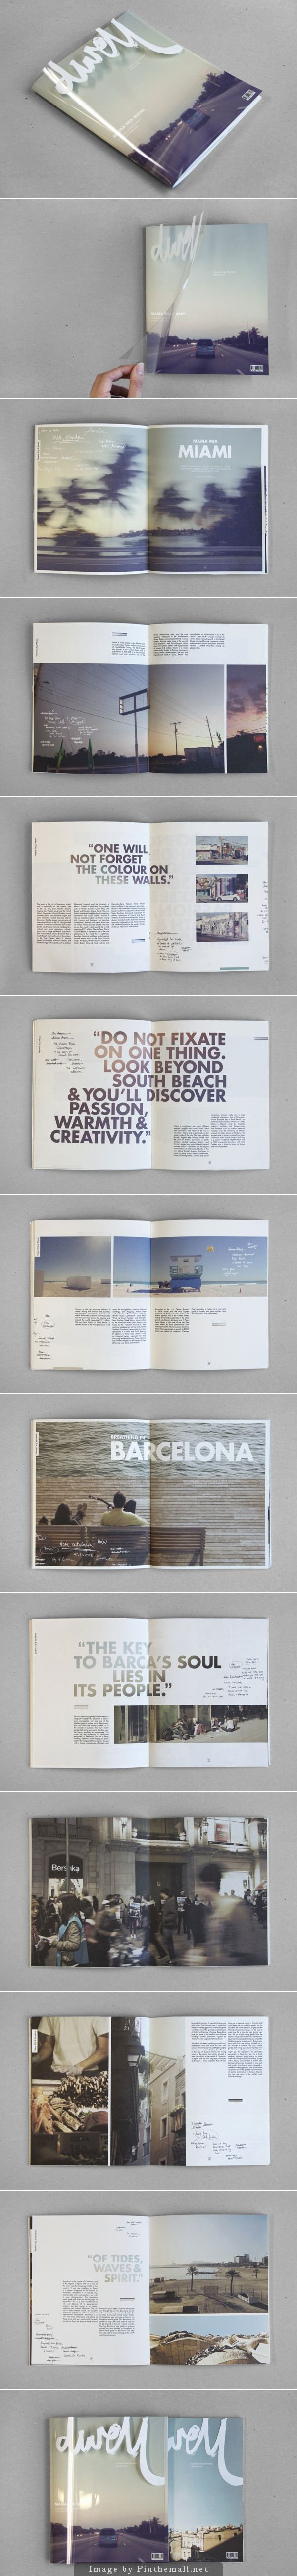 Dwell - Coastal Cities Revisited